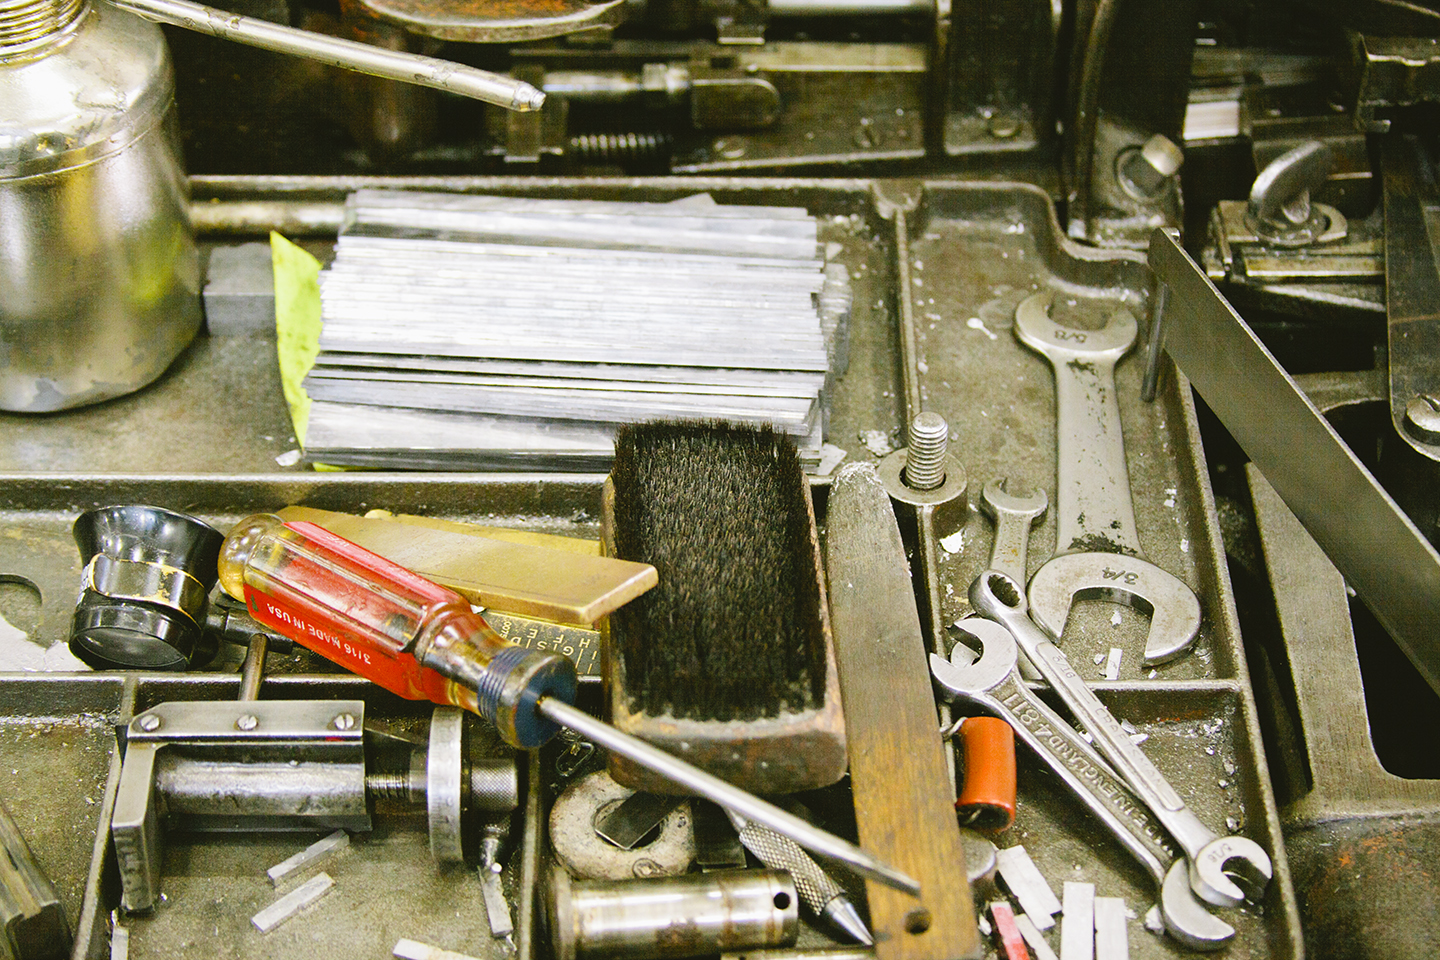 Studio visit at Arion Press and M & H Type from the Print Club Ltd. Journal